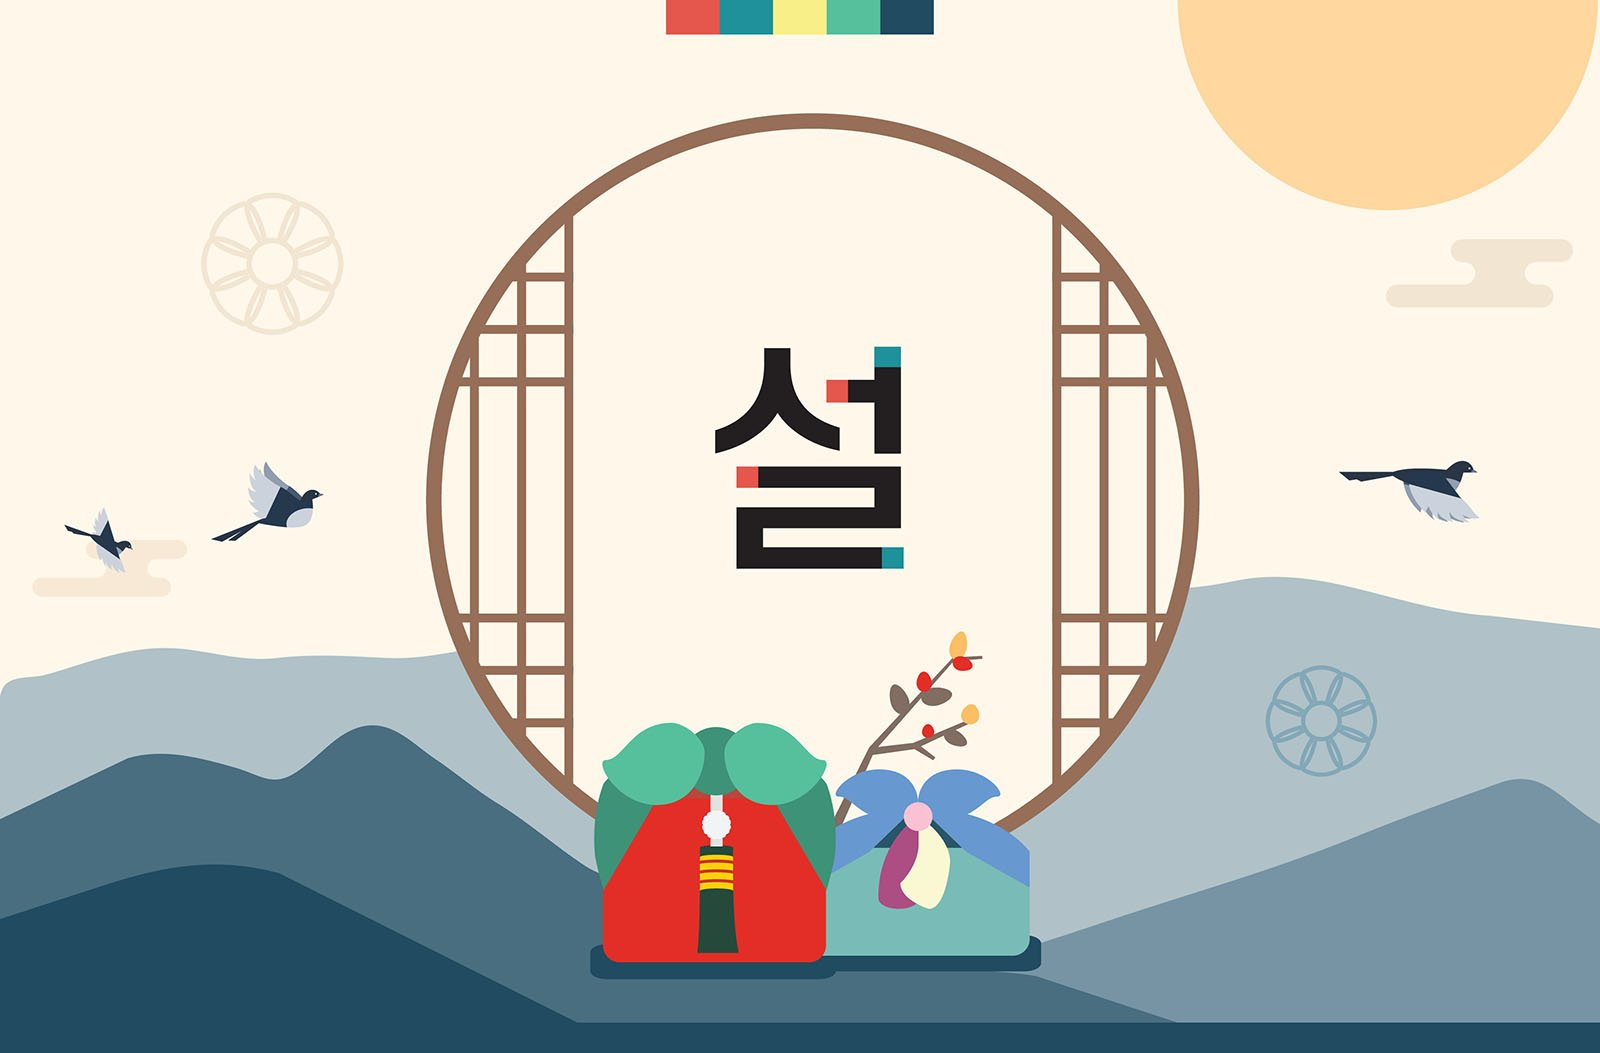 Do you want to celebrate New Year's day the Korean way?